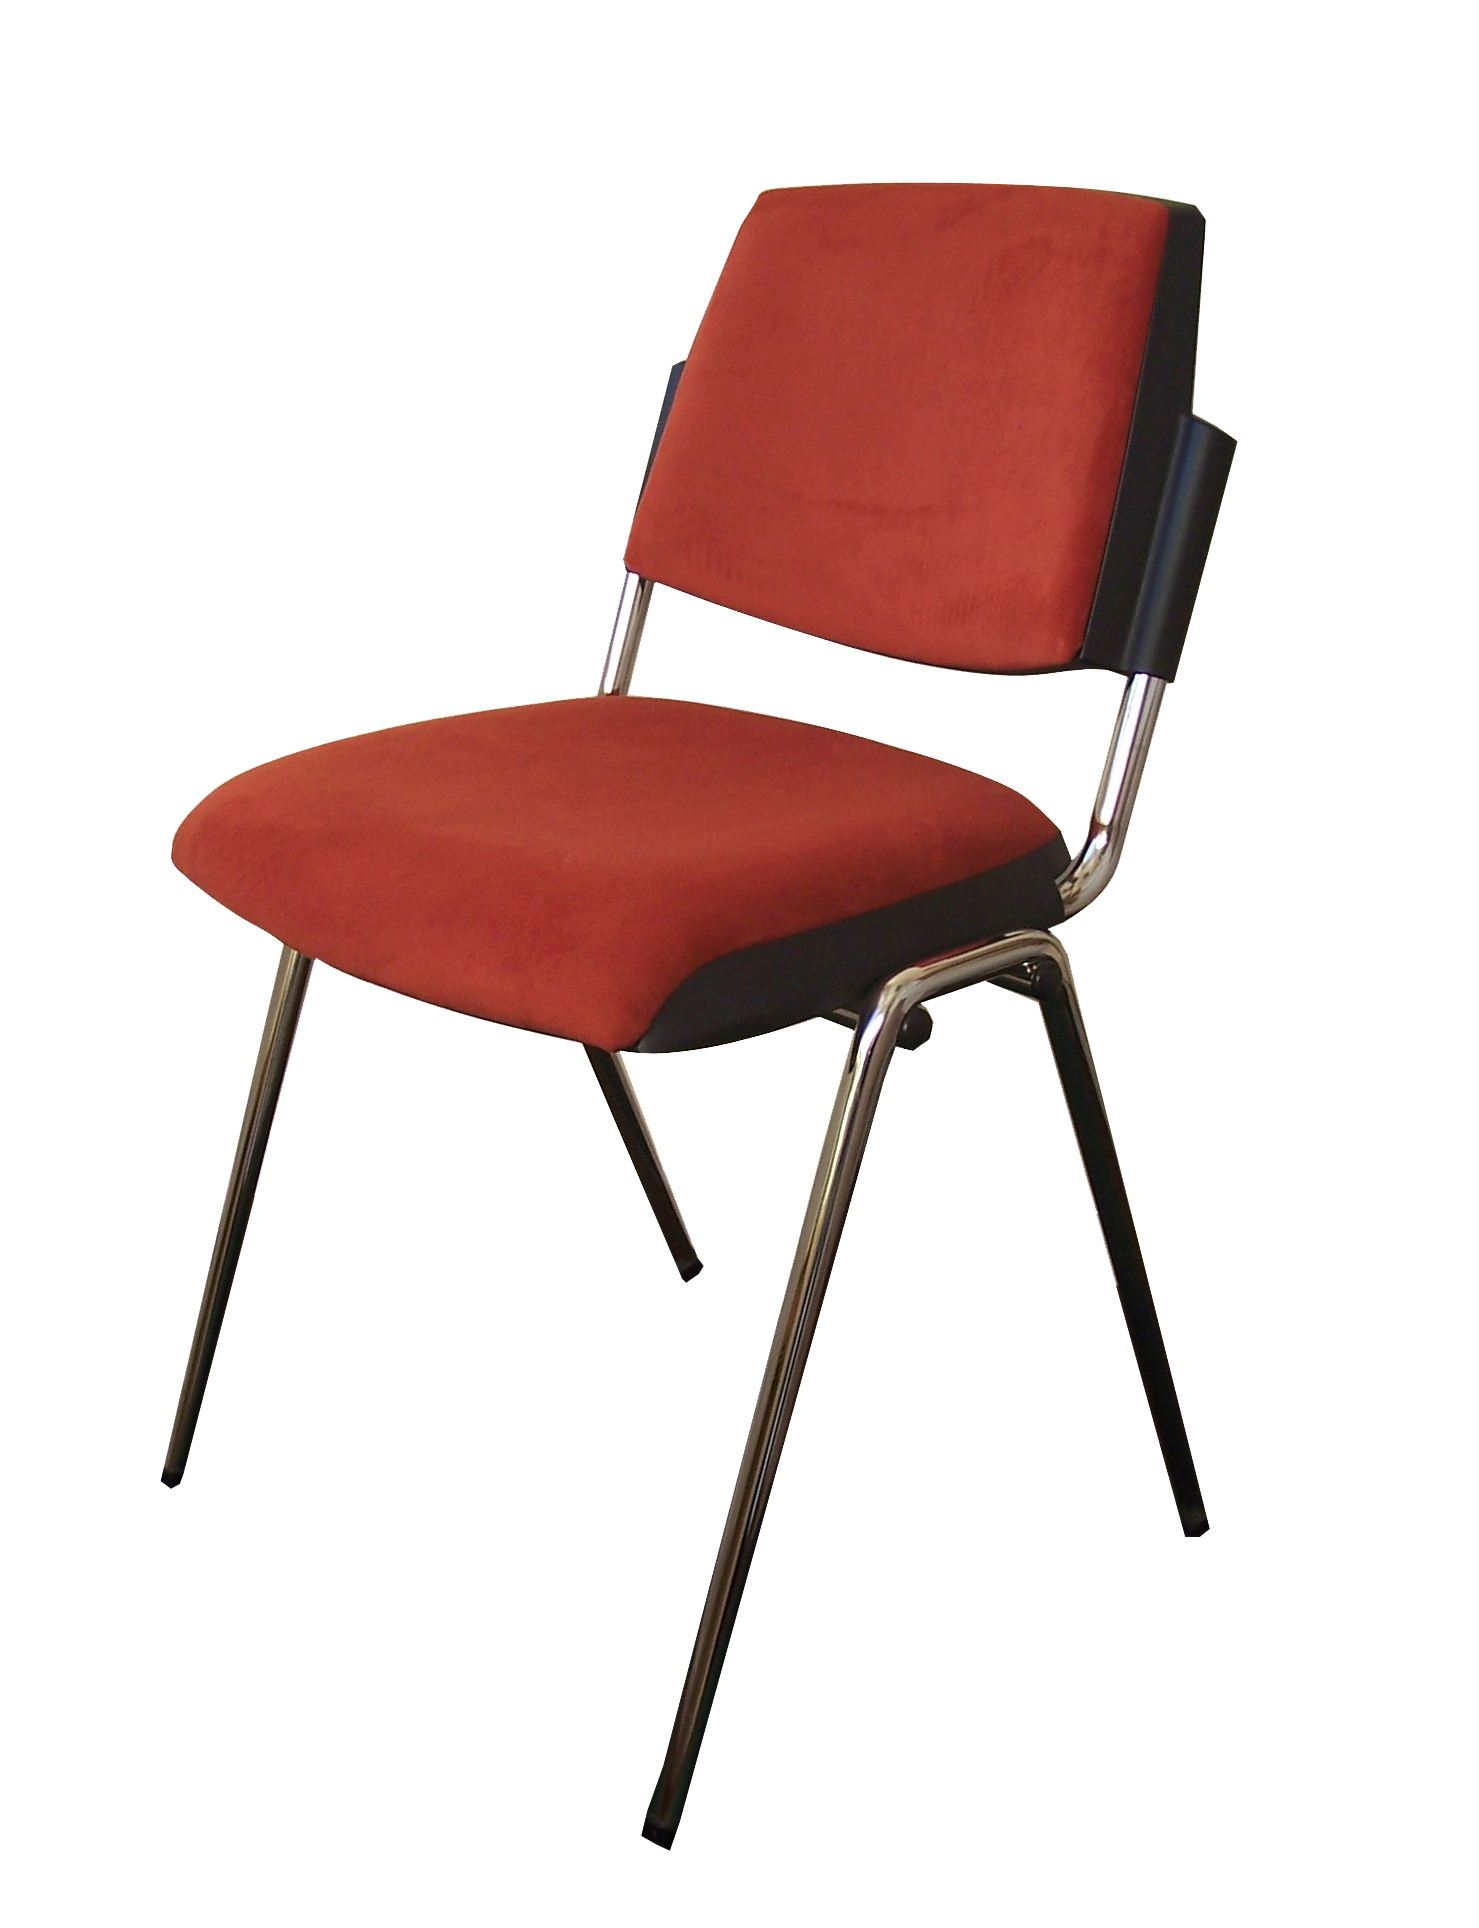 Stackable waiting room chair with silver metal frame and red upholstery